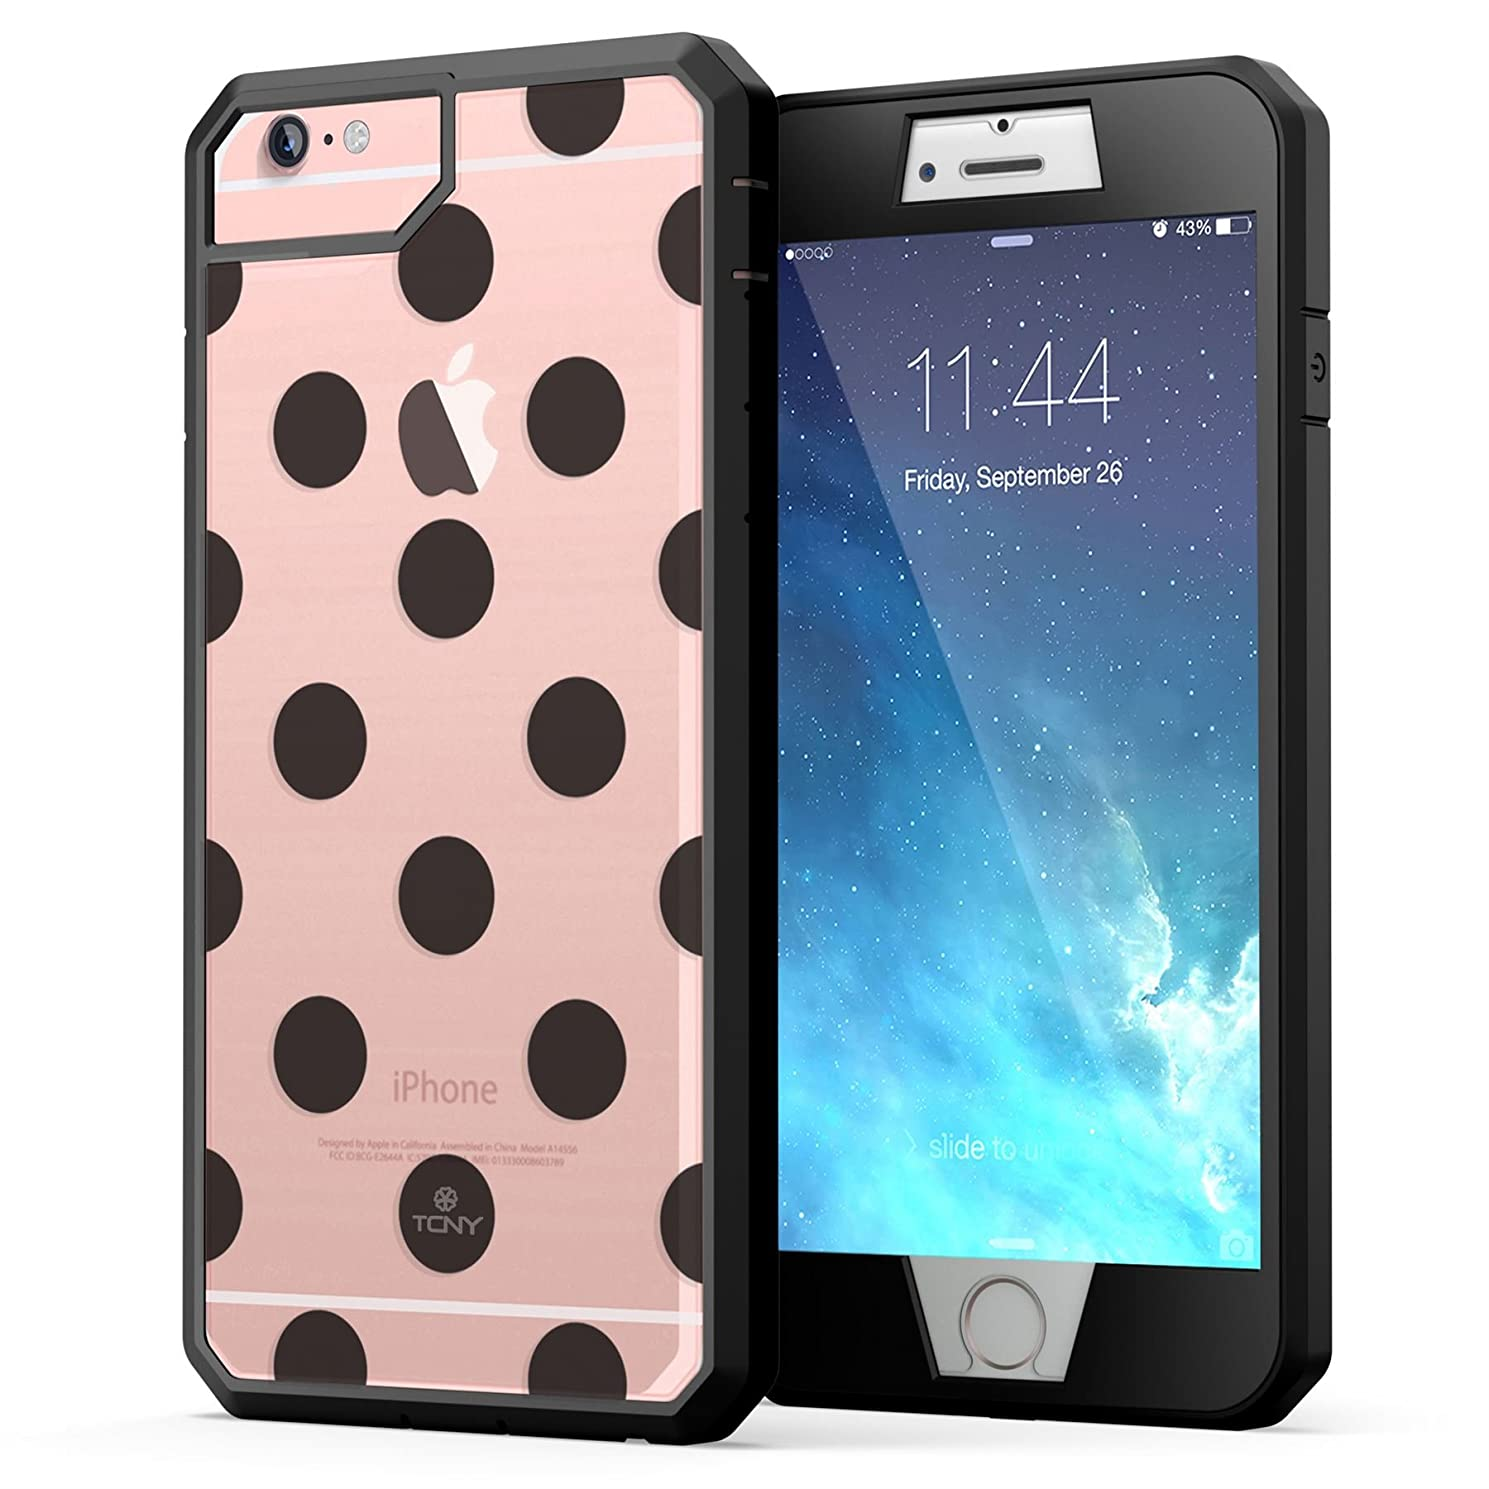 True Color Case Compatible with iPhone 6s Plus Case, Polka Dot [Dots Collection] Heavy Duty Hybrid + 9H Tempered Glass 360° Protection [True Armor Series] - Black